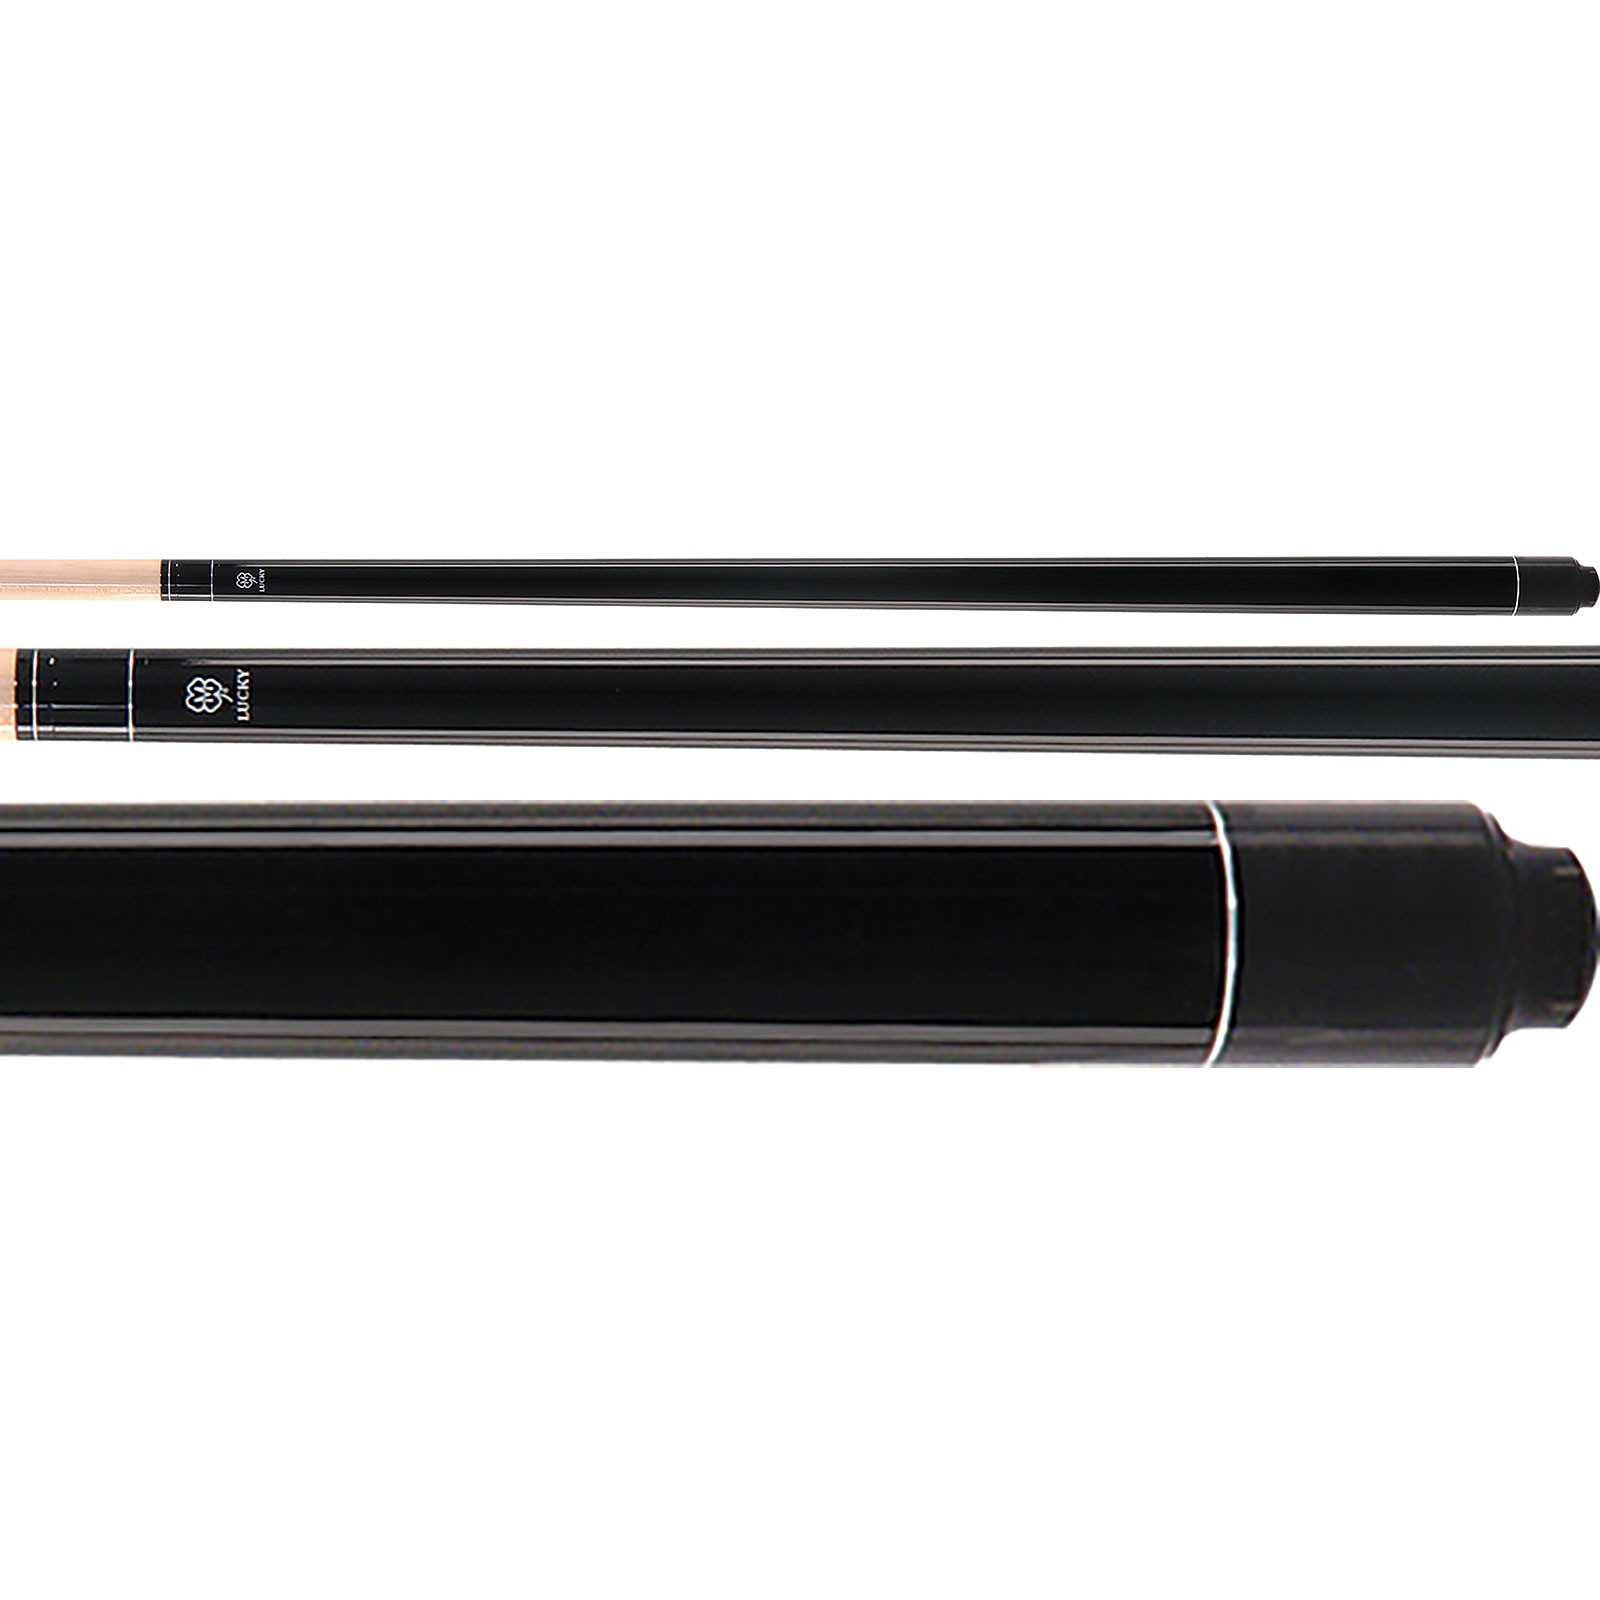 Mcdermott Lucky Pool Cue Stick L1 Black